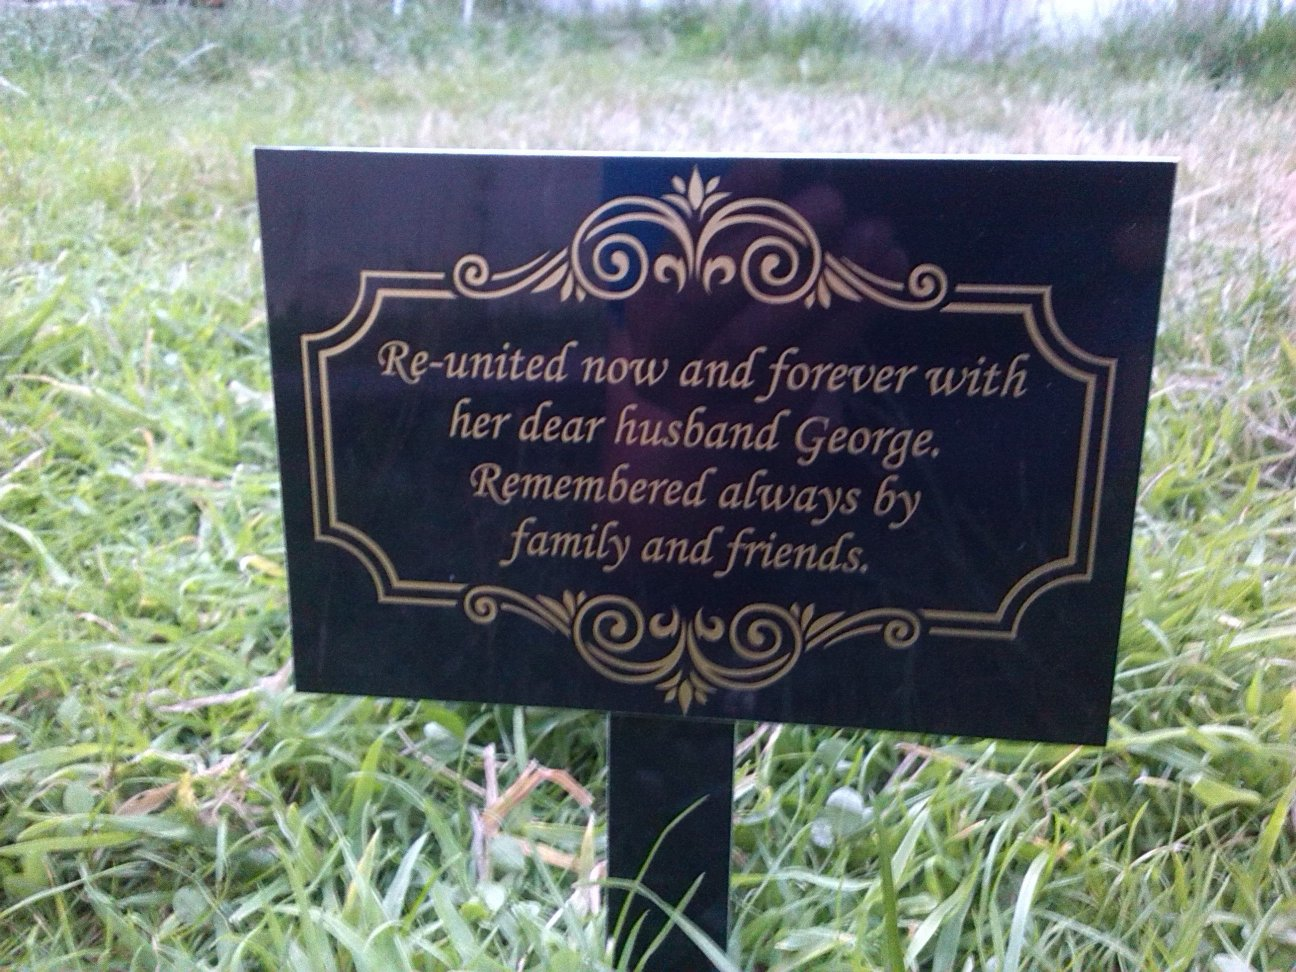 memorial garden plaque grave marker ornament churchyard 6 x 4 ebay. Black Bedroom Furniture Sets. Home Design Ideas